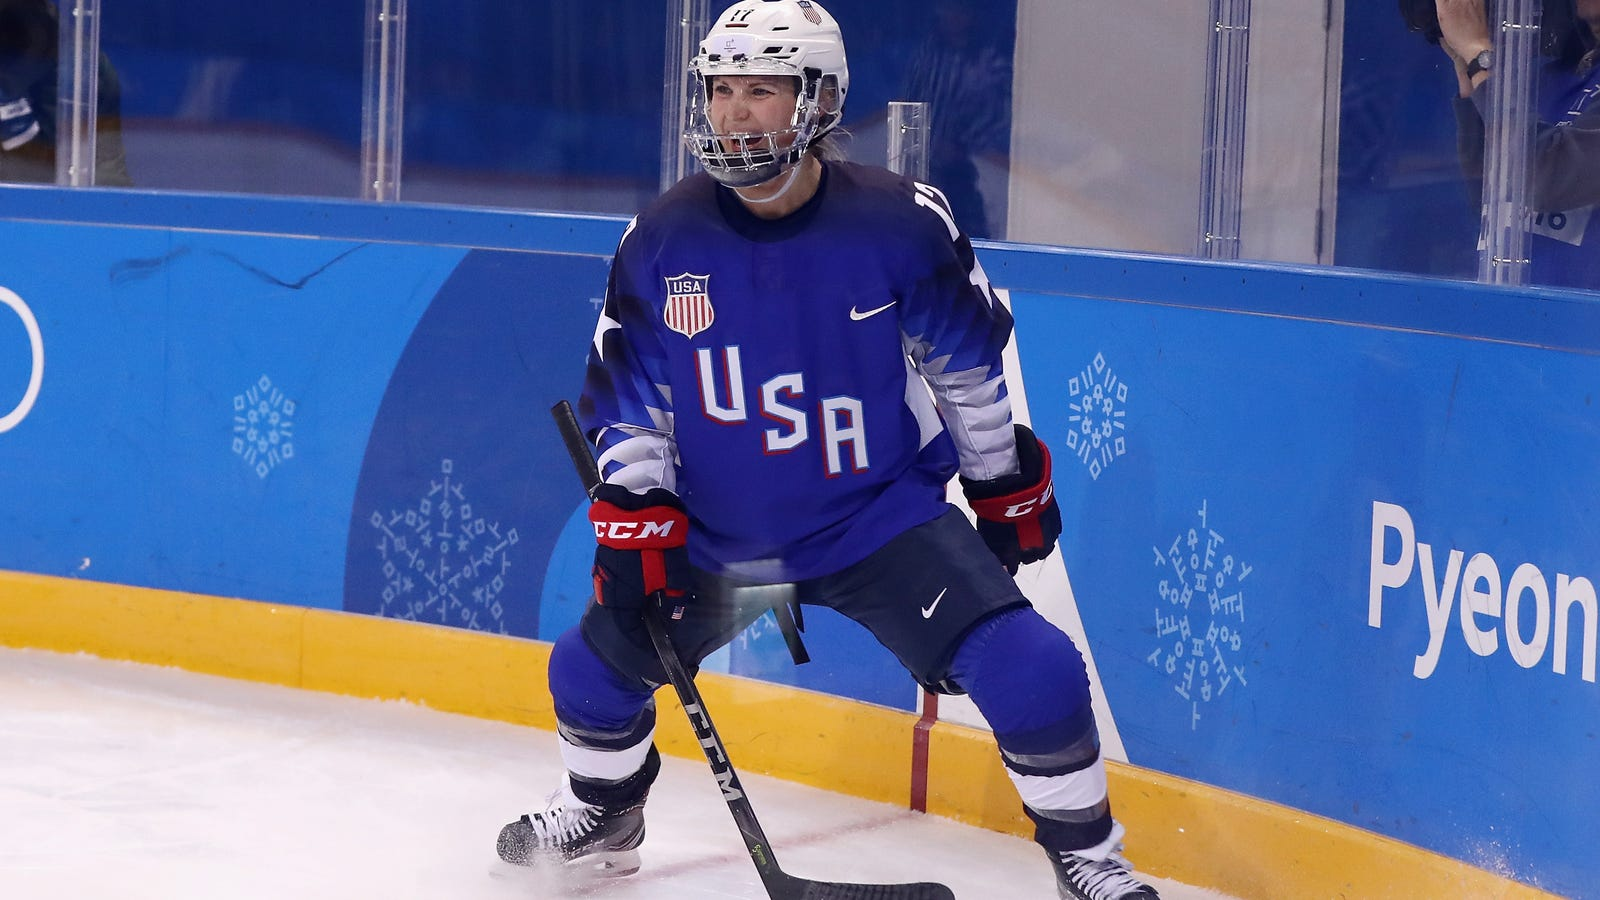 Jocelyne Lamoureux Scores Two Goals In Six Seconds For Team USA